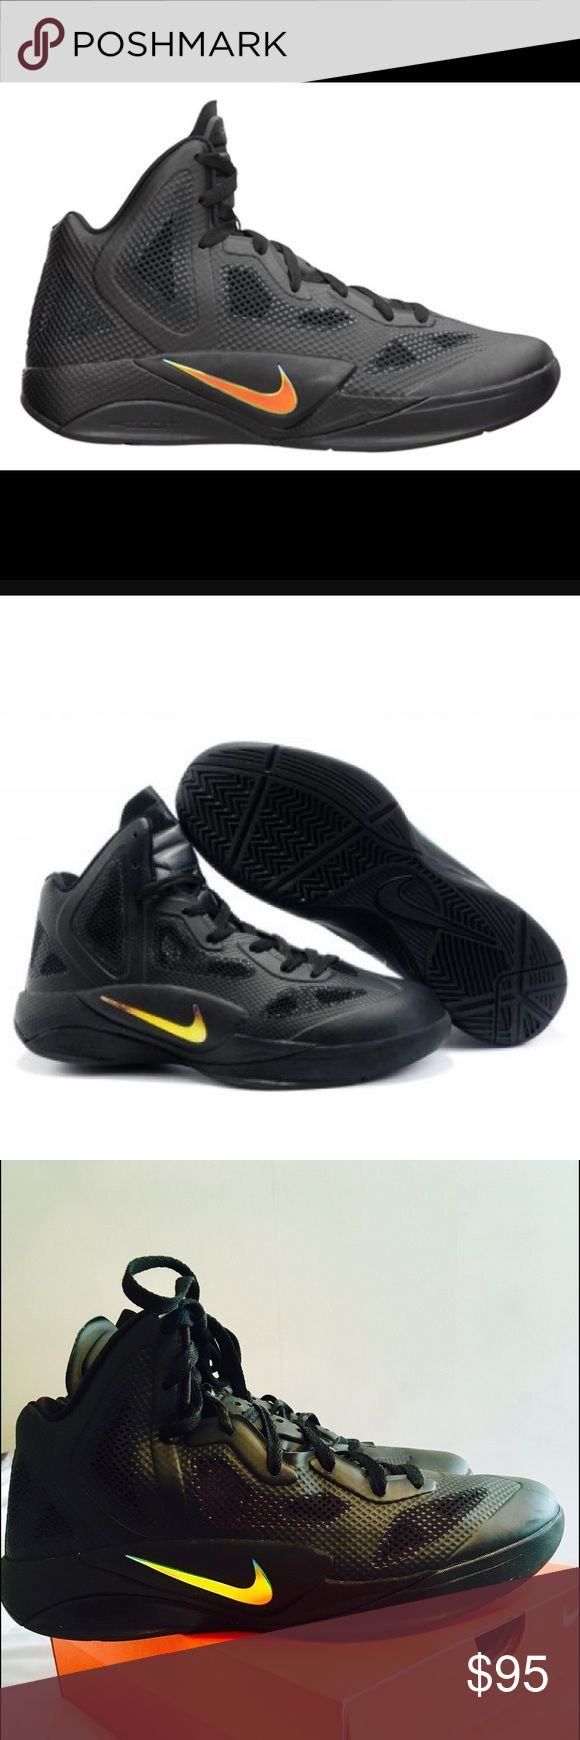 Nike Air Max Zoom Nike Zoom Hyperfuse all black Basketball Shoe. These shoes are in amazing condition! They were worn for one basketball game on indoor court only. They are completely black inside and out and feature an iridescent swoosh on the outside of both shoes. Because these are a special edition shoe, they do not have any inner tags showing size. They are a men's size 10 or 10.5.  Amazing condition like new! I'm taking offers! Thanks for looking 😎 Nike Shoes Sneakers